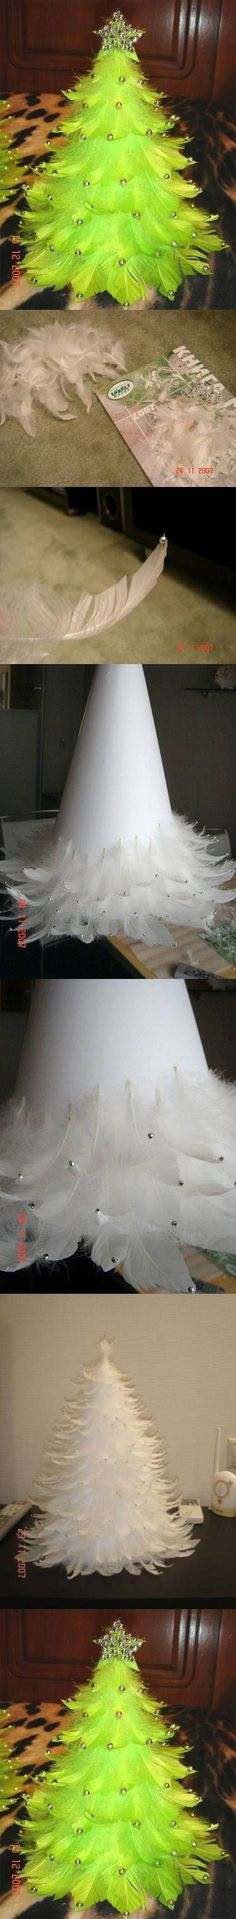 DIY Christmas Tree out of feathers feathers diy christmas easy crafts diy ideas…